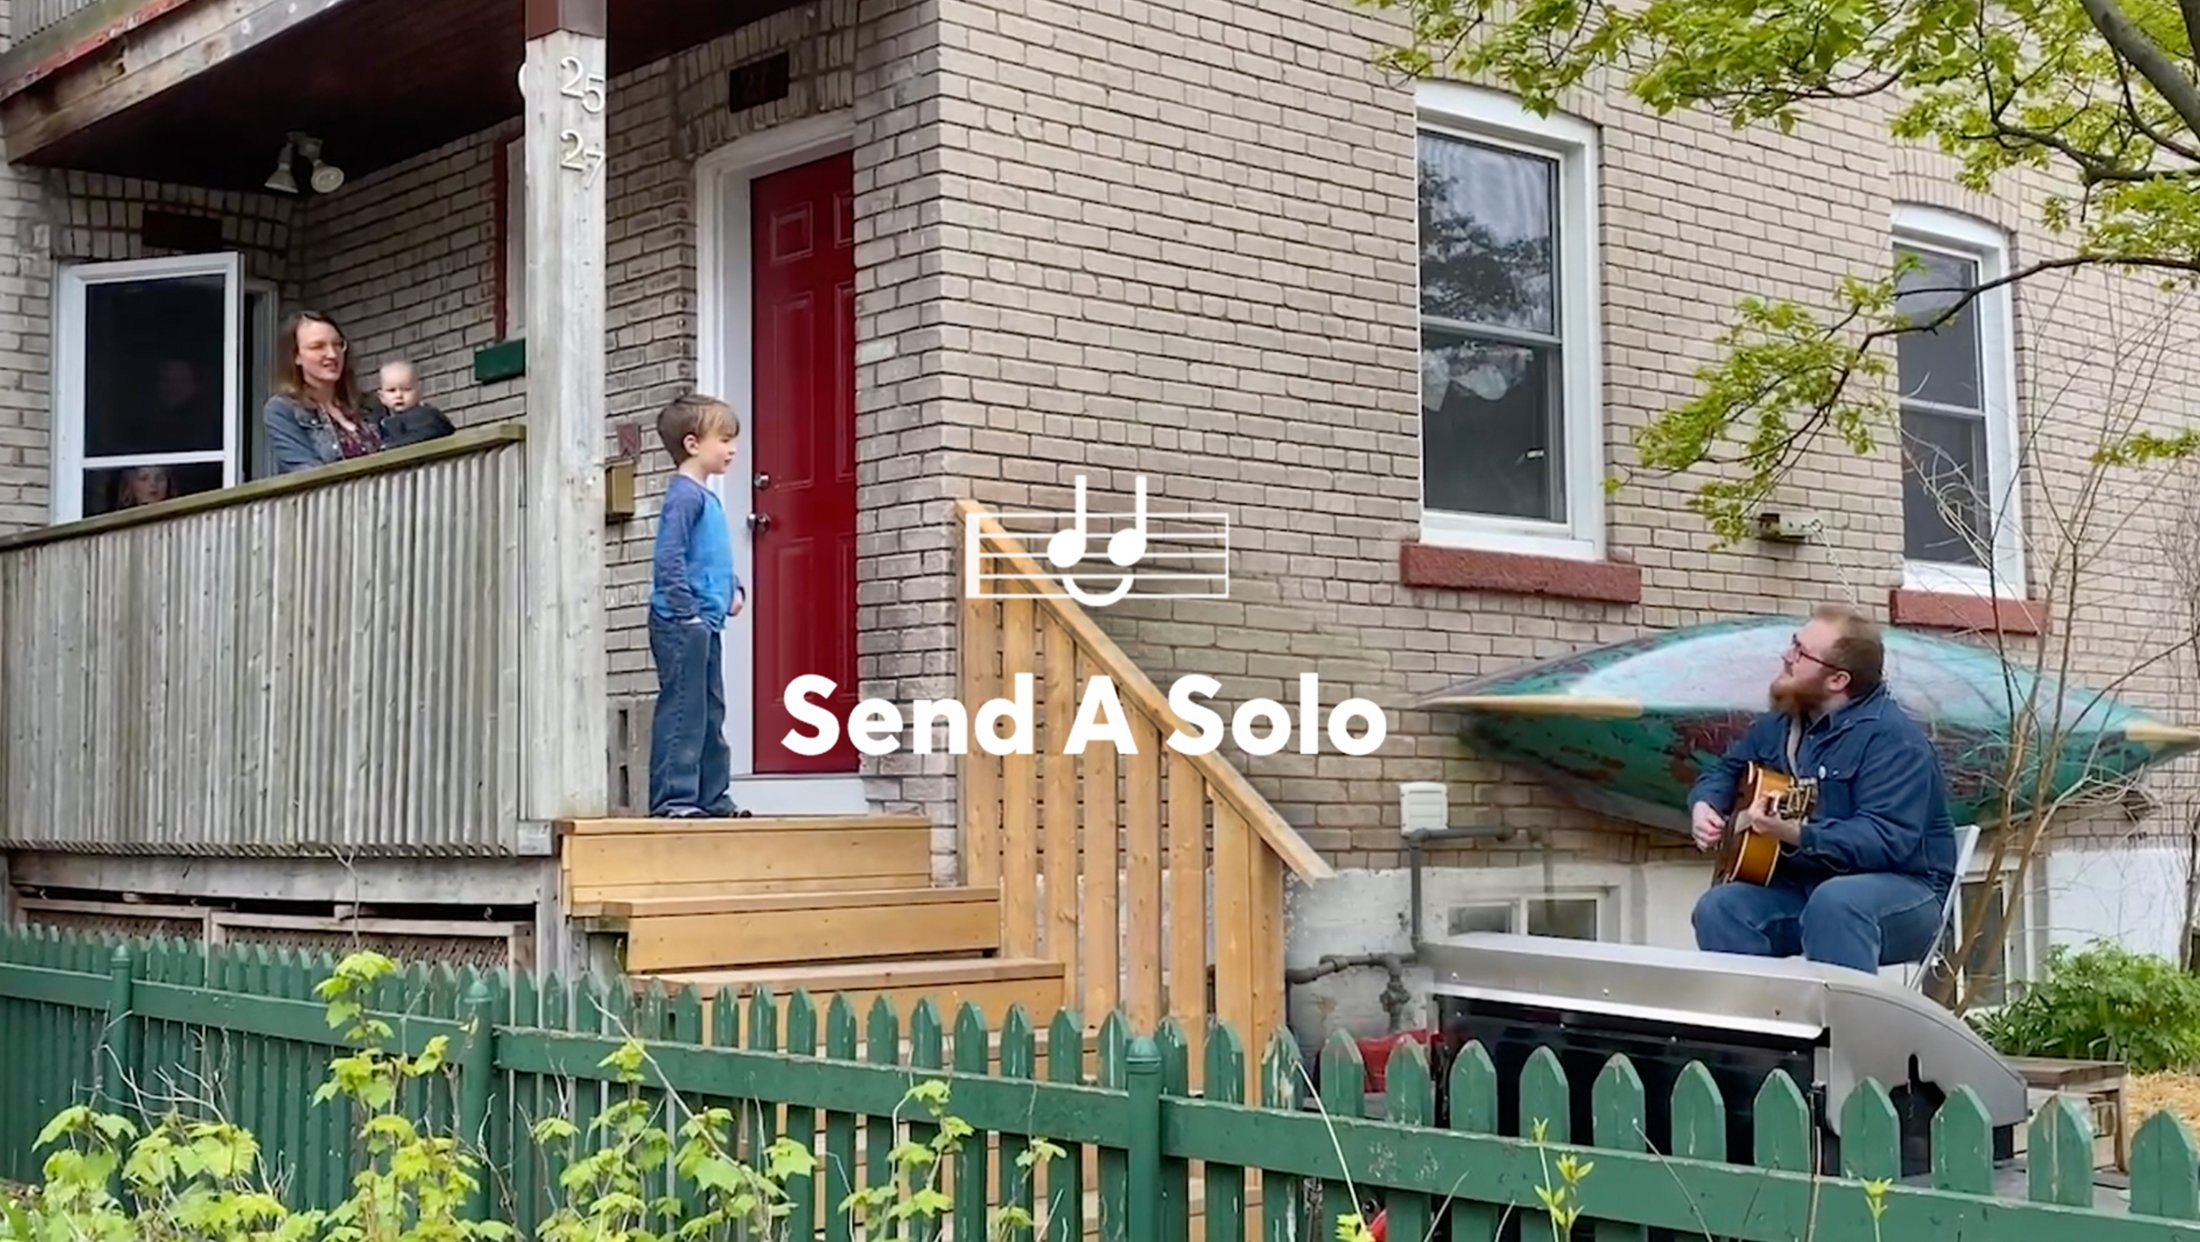 Thumbnail for Send a Solo